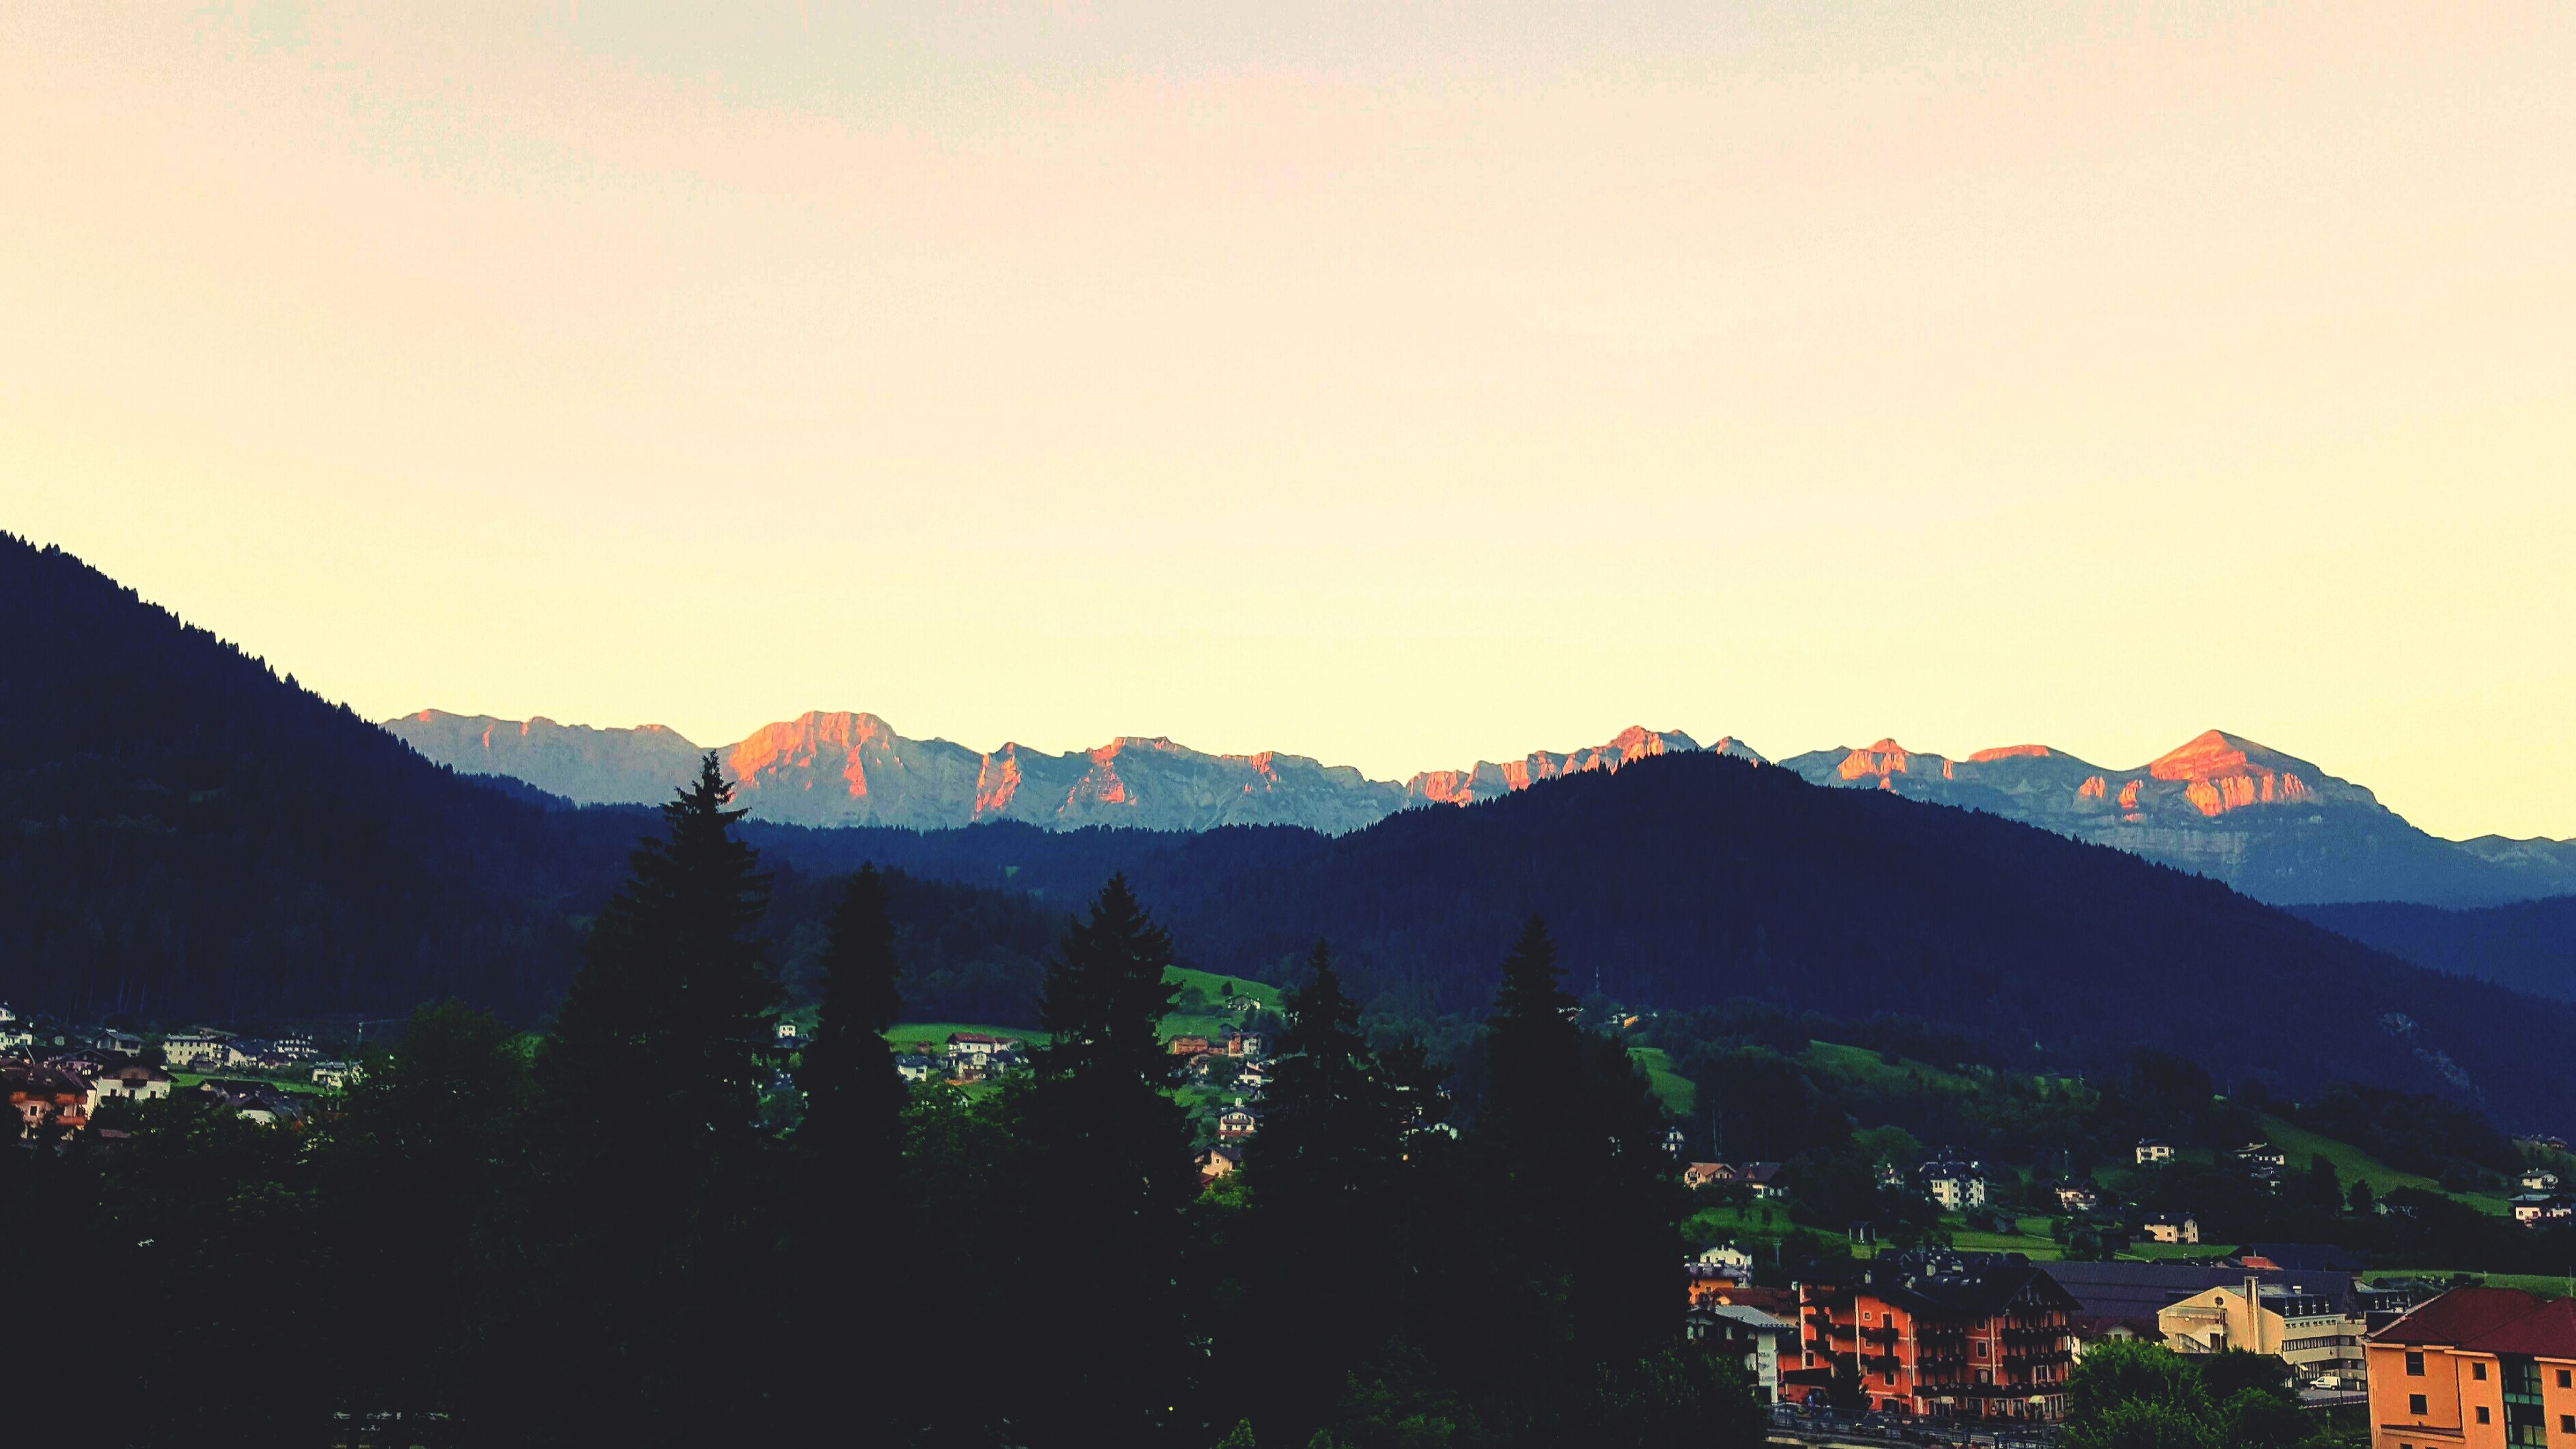 mountain, mountain range, clear sky, copy space, scenics, beauty in nature, tranquility, tranquil scene, silhouette, landscape, nature, building exterior, idyllic, outdoors, sunset, built structure, tree, no people, dusk, hill